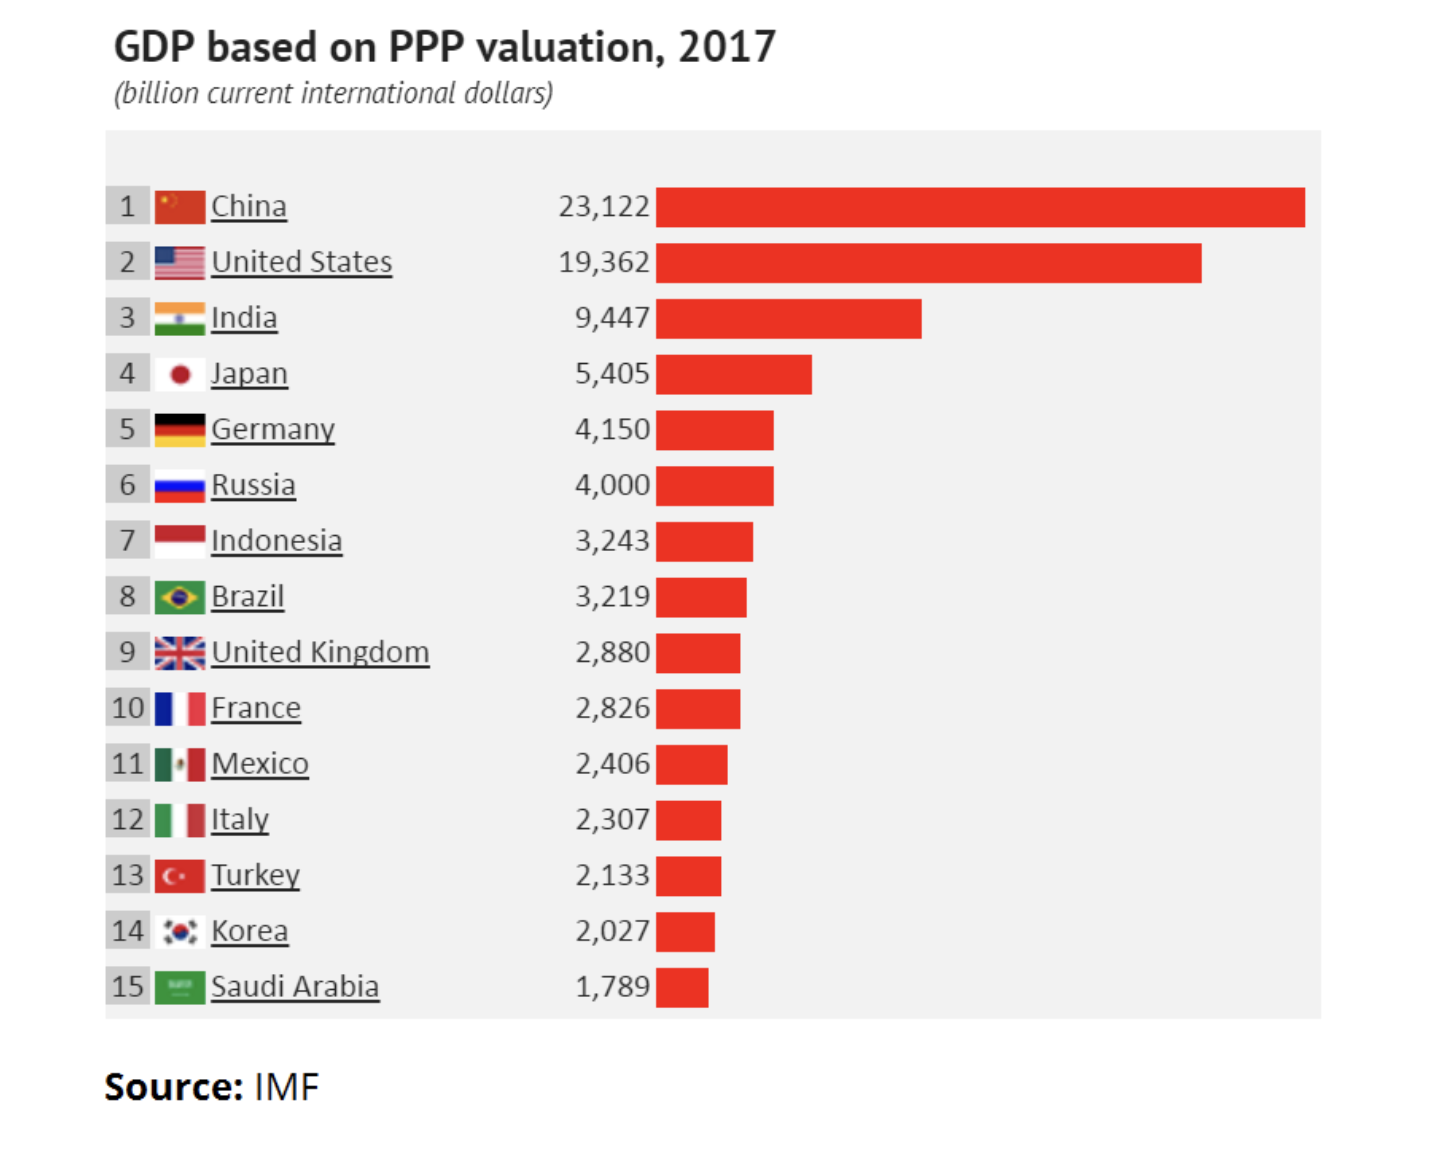 In PPP terms, China's GDP has long outstripped the US